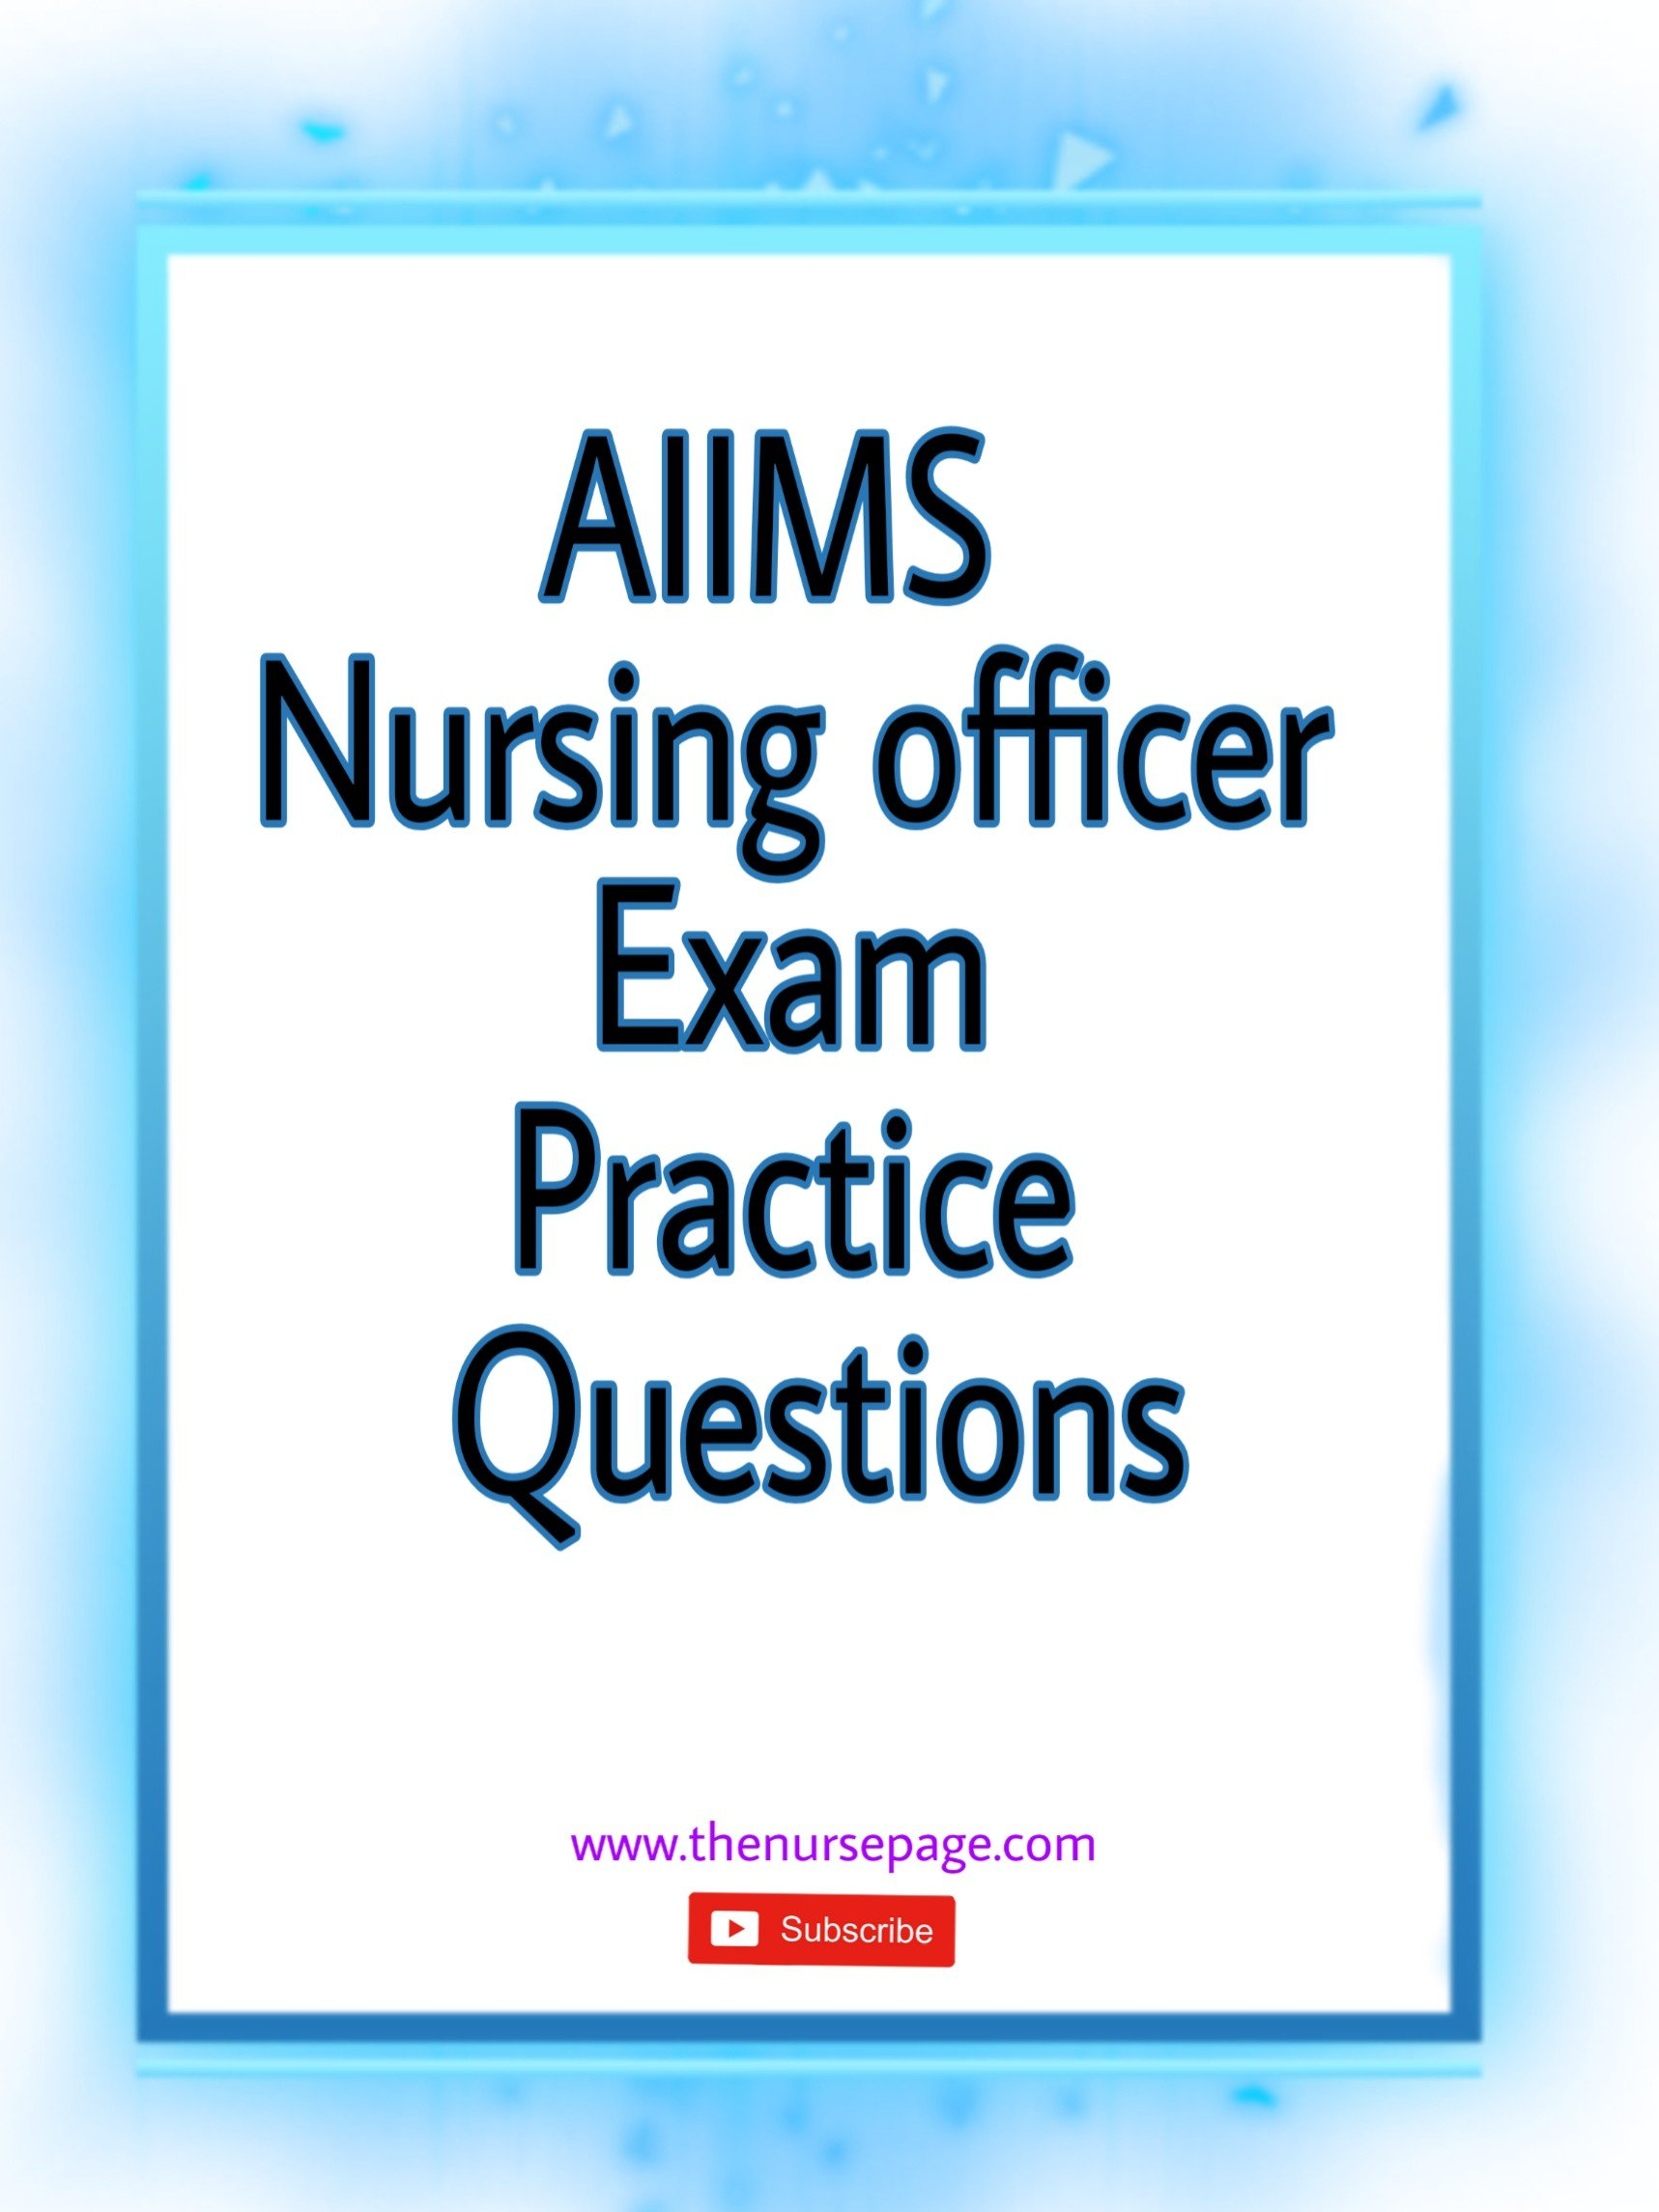 aiims nursing officer exam practice questions